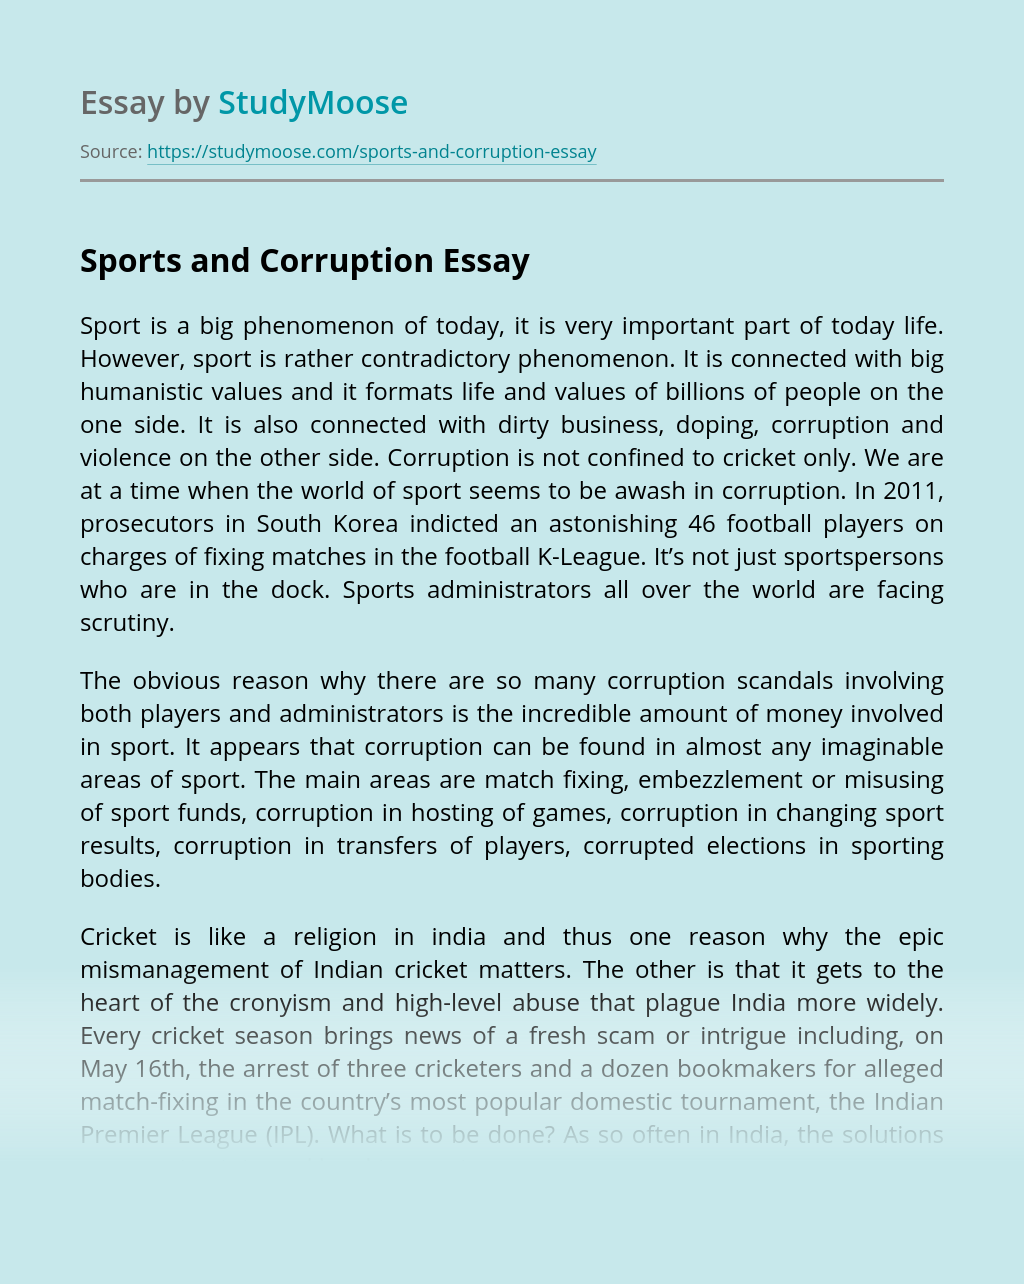 Sports and Corruption